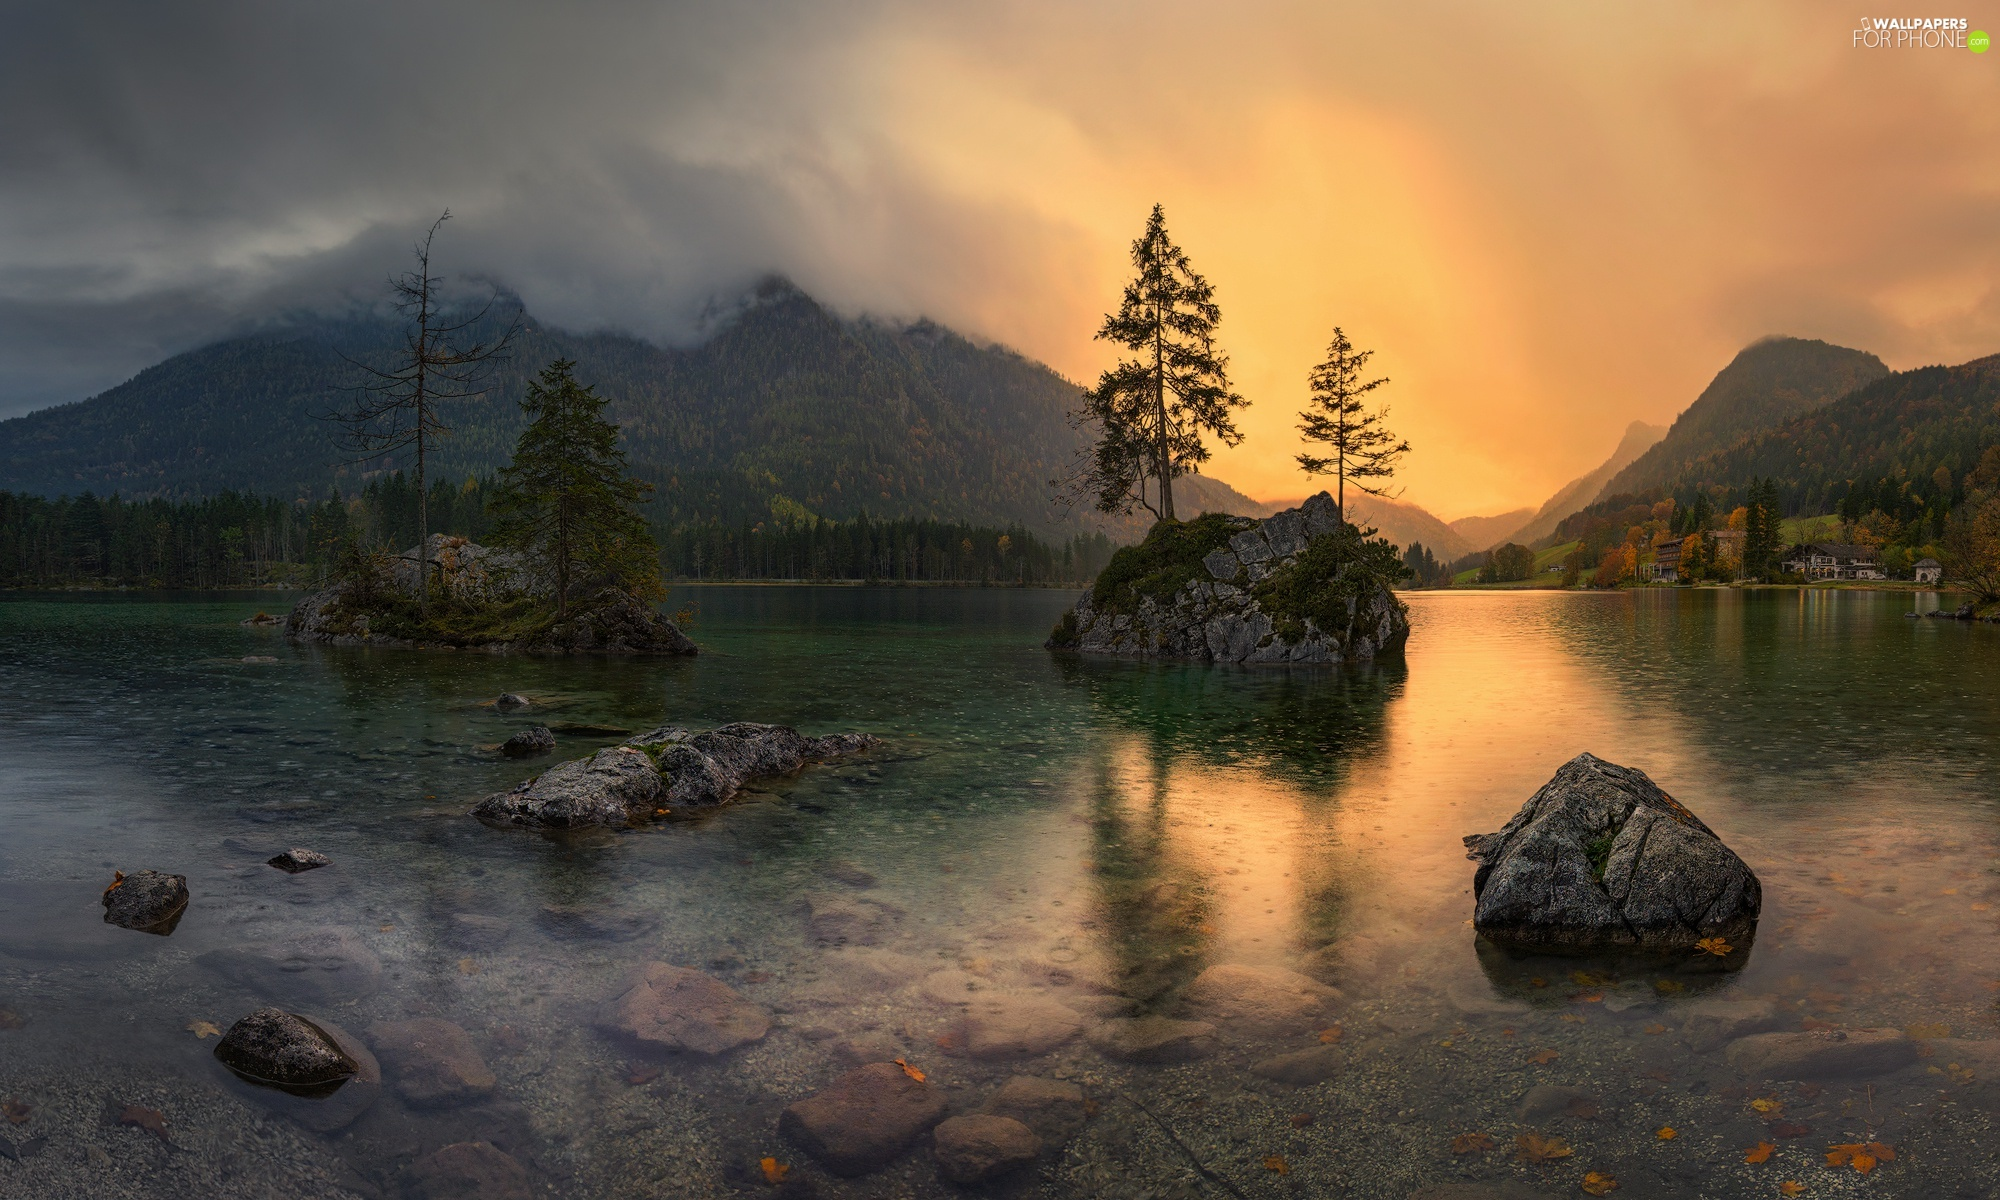 rocks, Lake Hintersee, trees, viewes, Bavaria, Germany, Fog, Houses, Alps Mountains